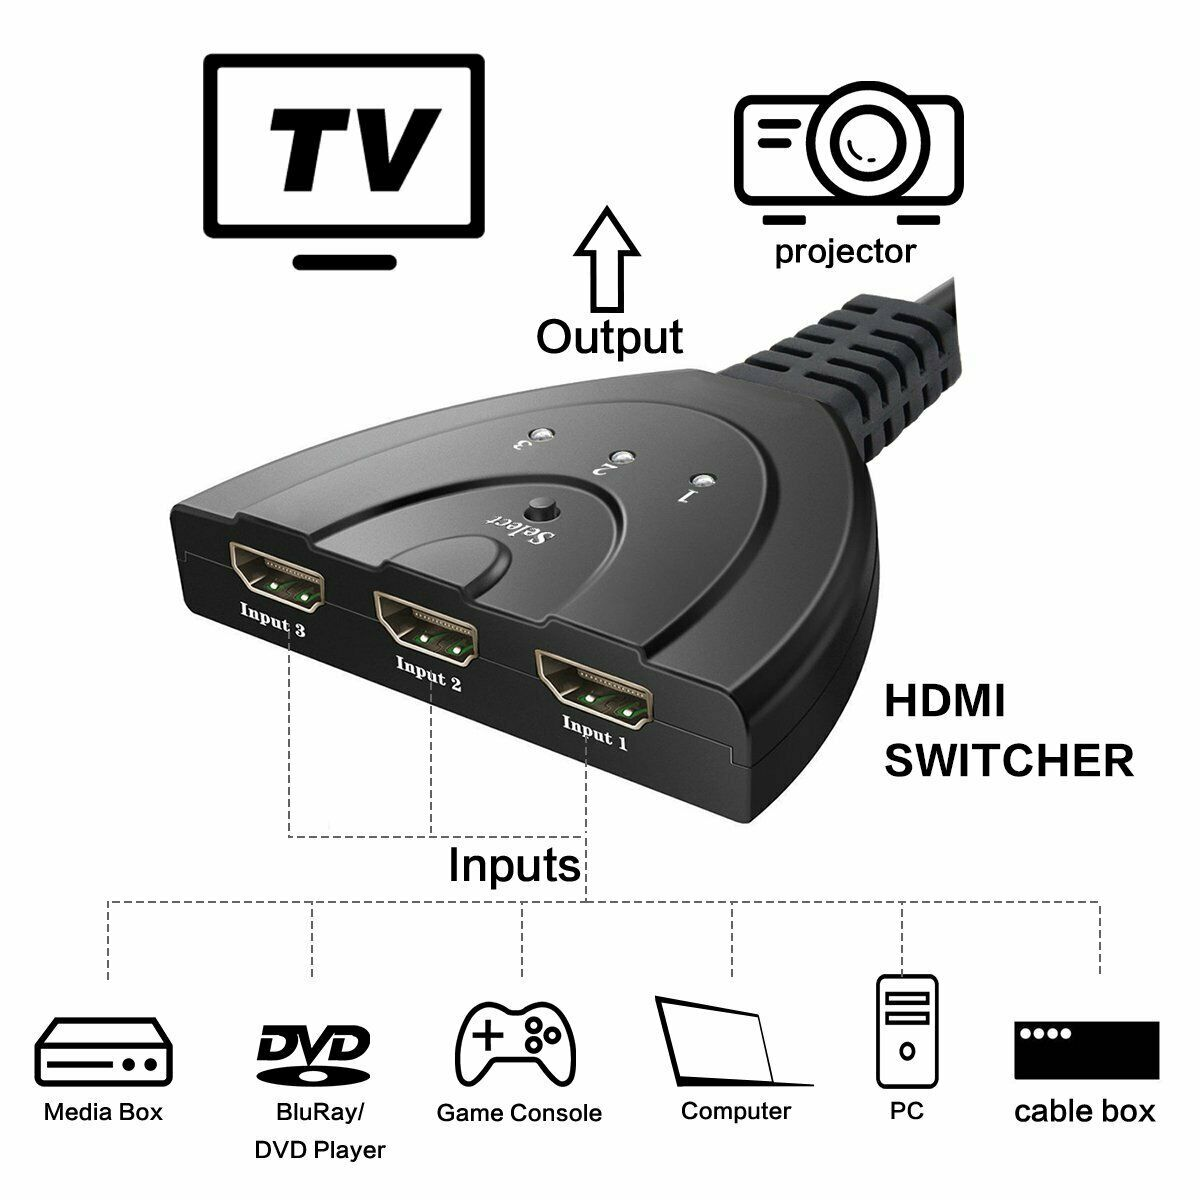 3 Hdmi Port Switch Switcher Splitter HUB Box Cable For HDTV 1080P Xbox PS4 USA Consumer Electronics